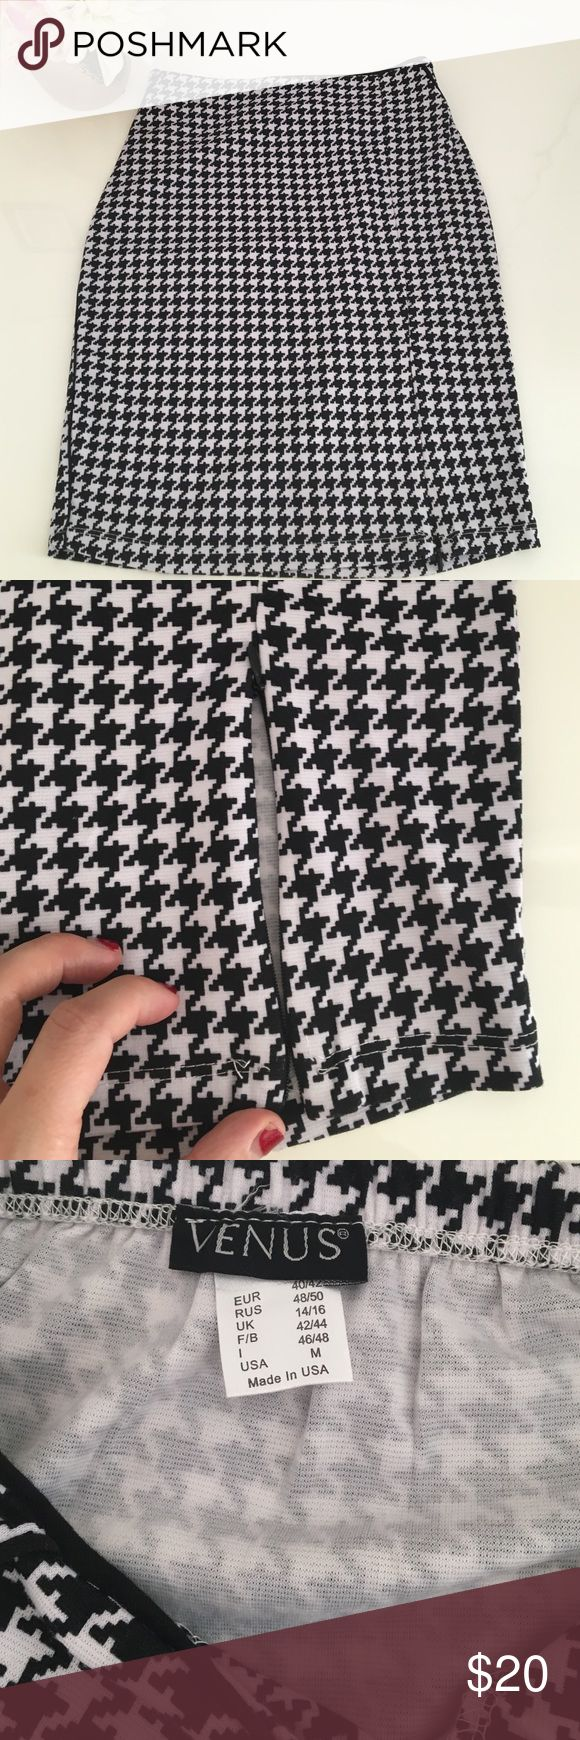 Pencil skirt Cute houndstooth pattern pencil skirt. The material is pretty thin and probably best for a slimmer and fit female, but nice curves will also do. (The last picture is the ad from Venus). The material is nice and breezy and best to be worn in the spring/ summer. Never worn before. Venus Skirts Pencil